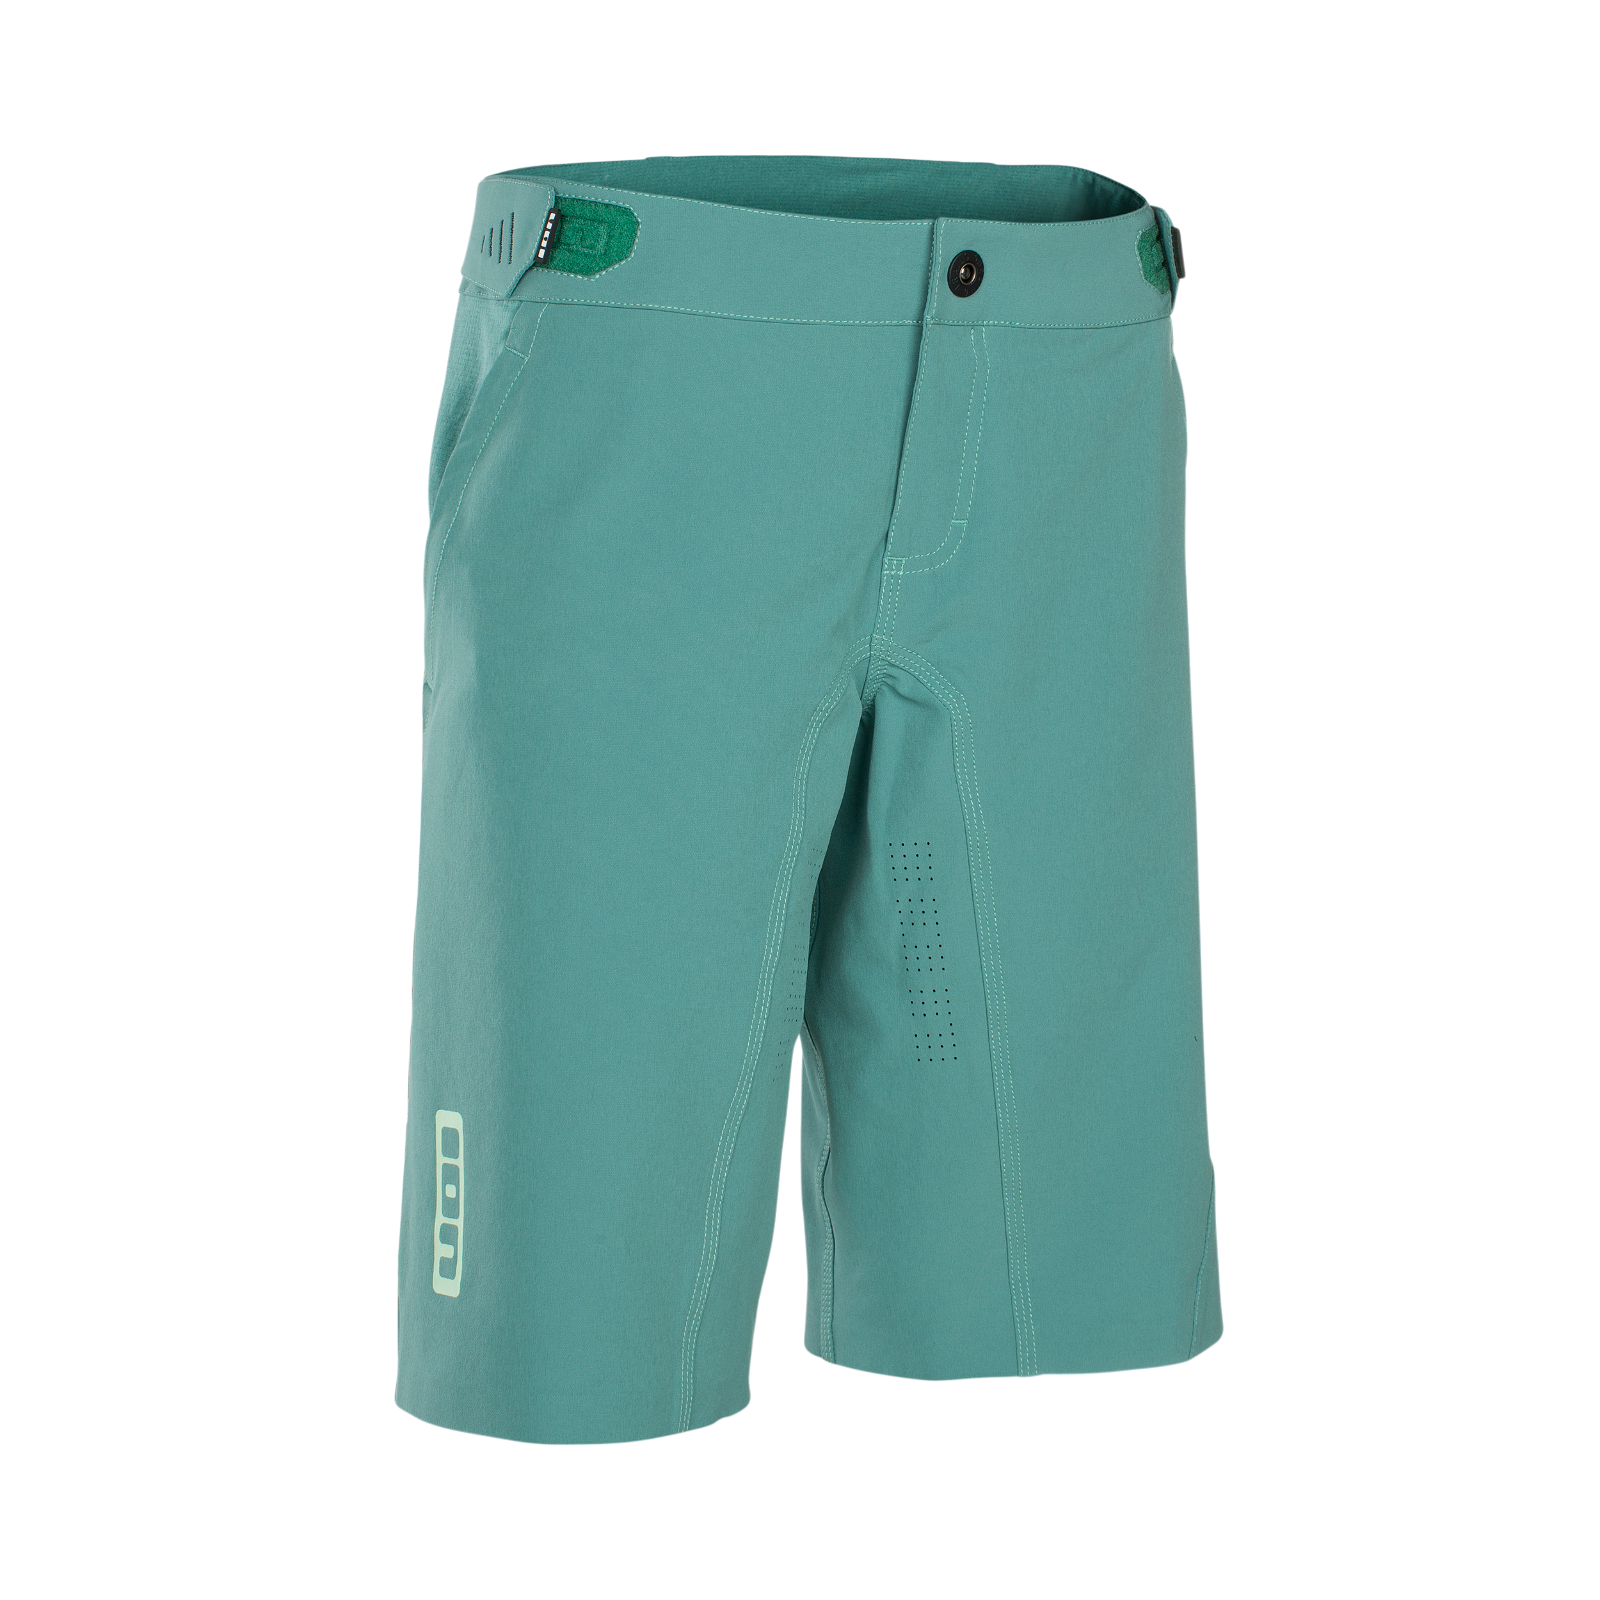 ION 3 Layer Shorts Traze AMP pink isover 30//S